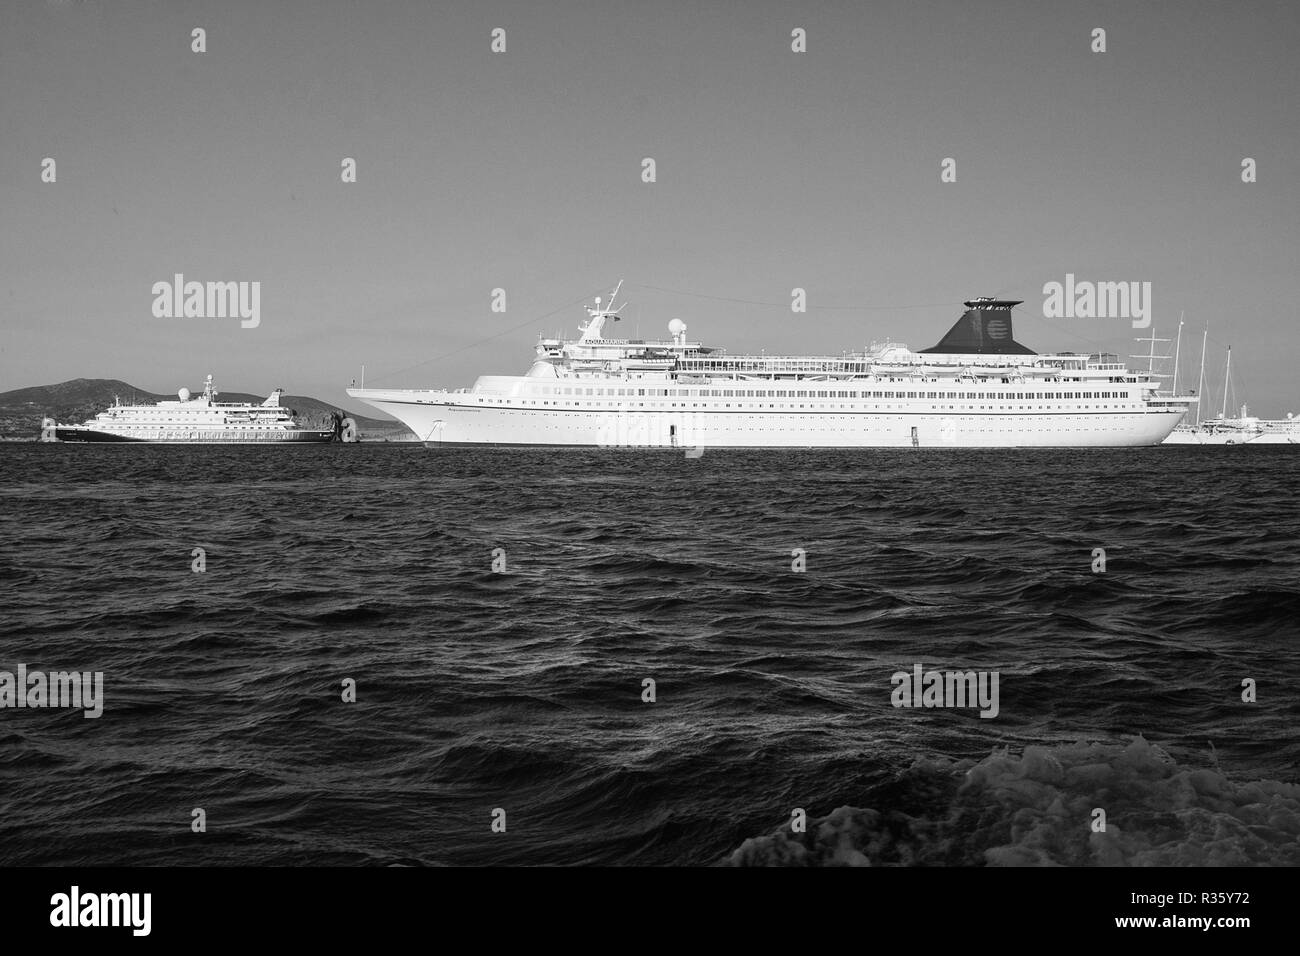 Patmos, Greece - April 19, 2010: passenger ships in blue sea. Cruise ships or liners on sunny sky. Cruising for pleasure voyage. Luxury vacation. Summer vacation and travel. Travelling and wanderlust. - Stock Image